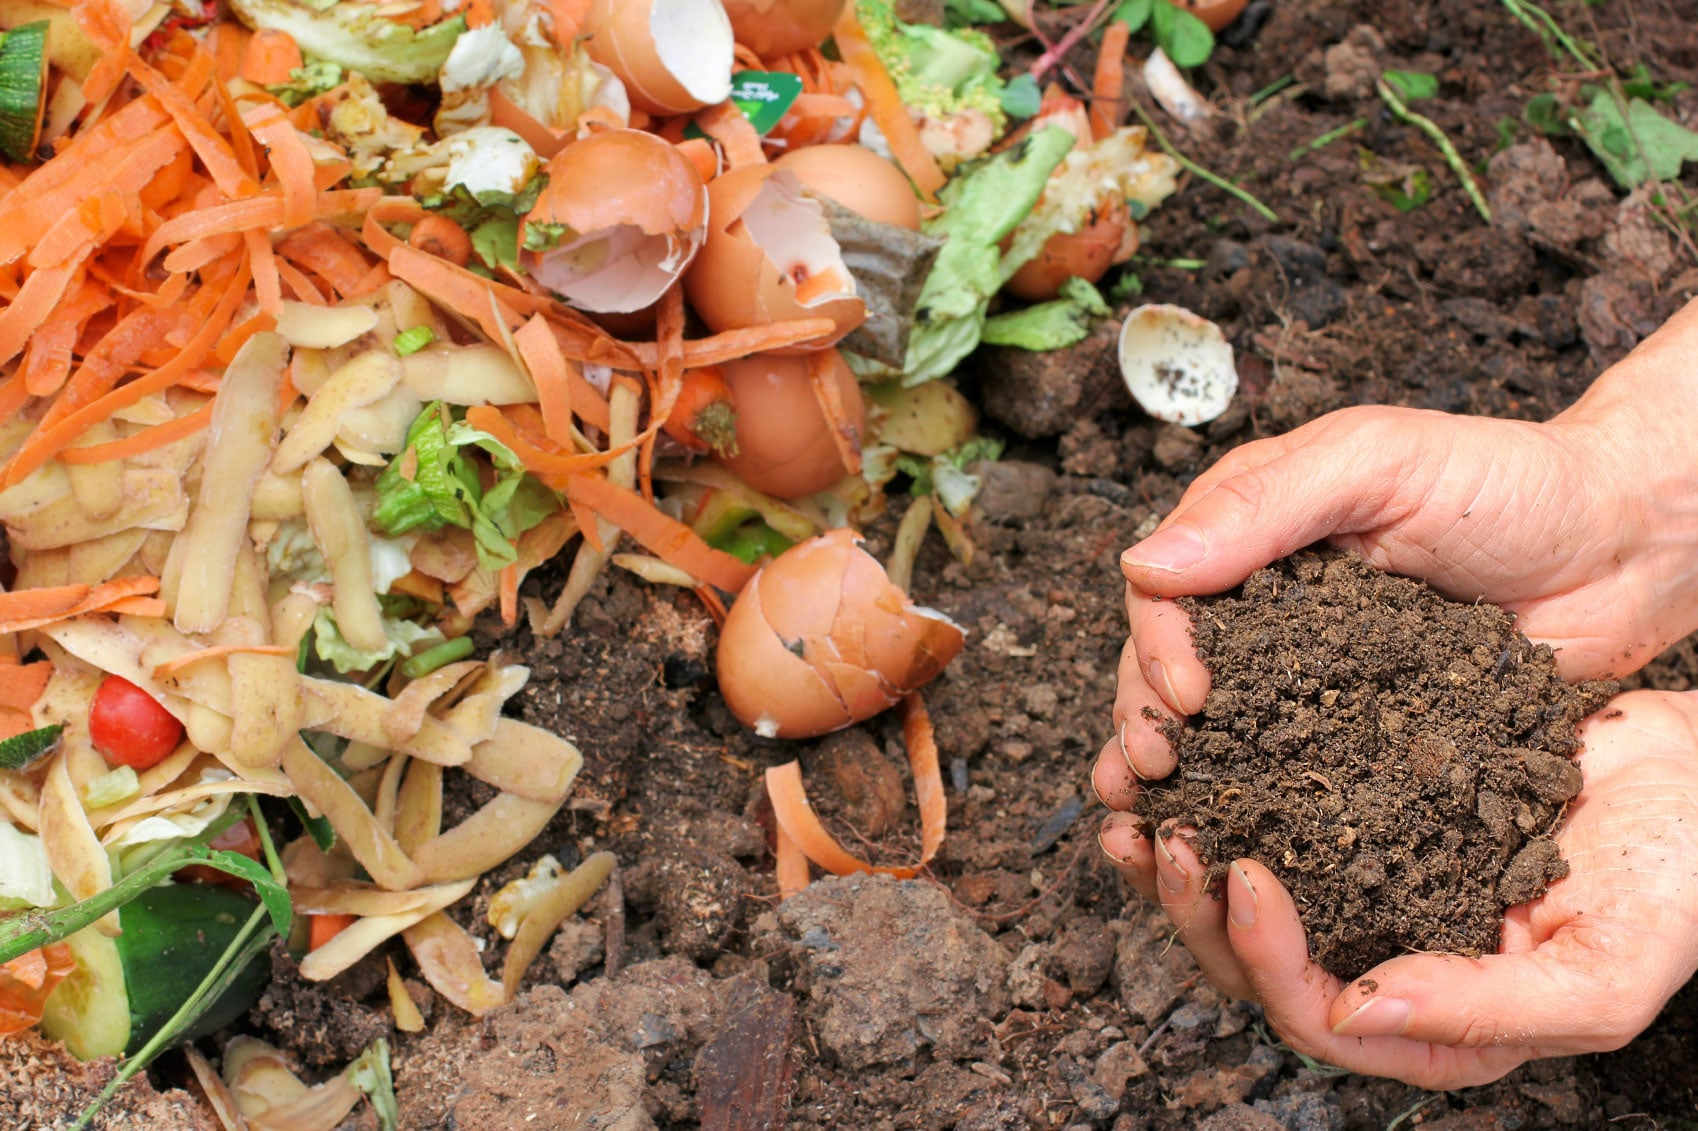 dispose-of-organic-waste-in-pots-make-compost-use-it-in-kitchen-garden